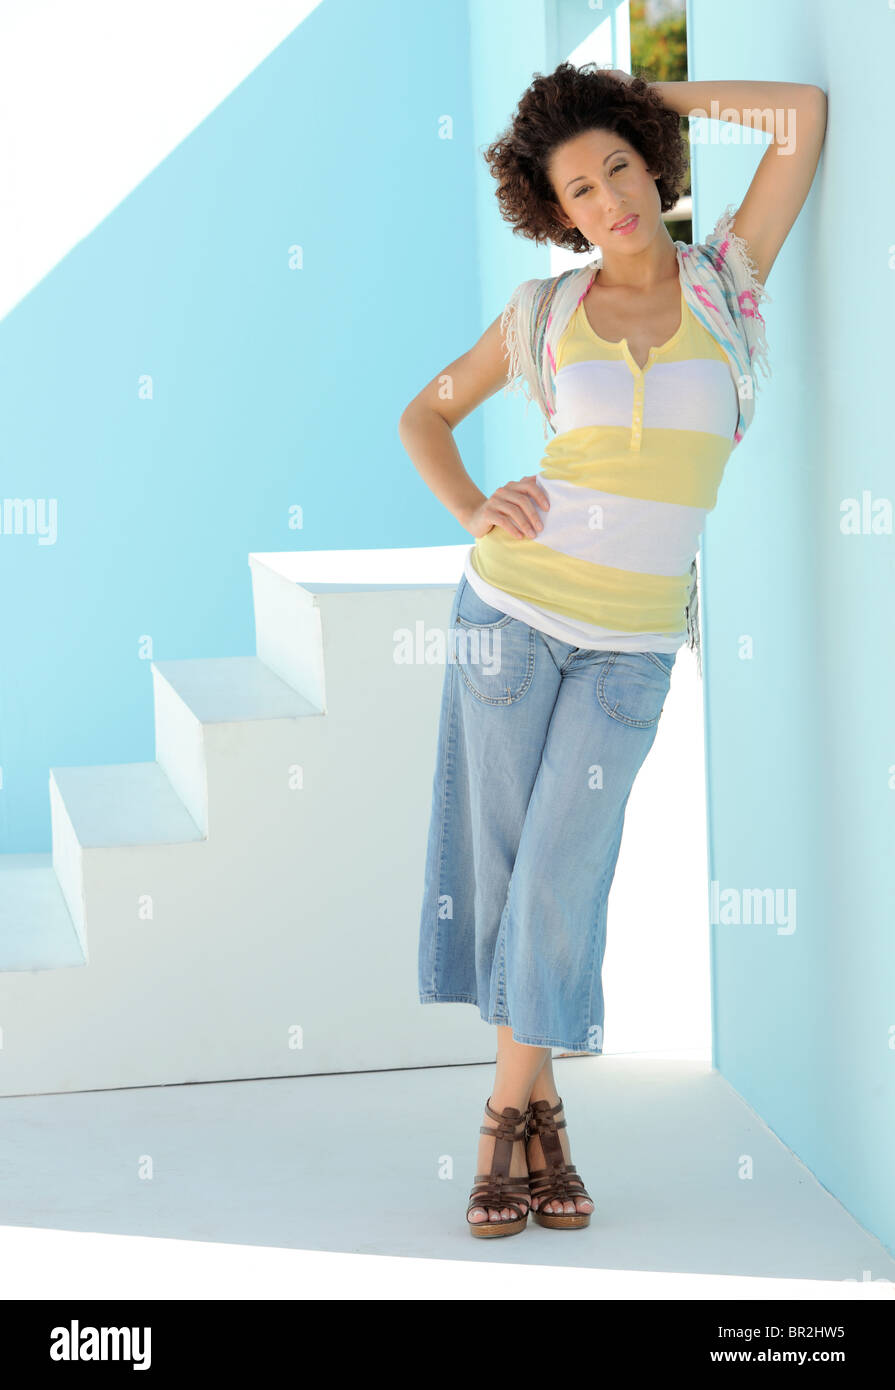 367805684f0a Beautiful Hispanic model leaning in the shade of a blue wall in ...